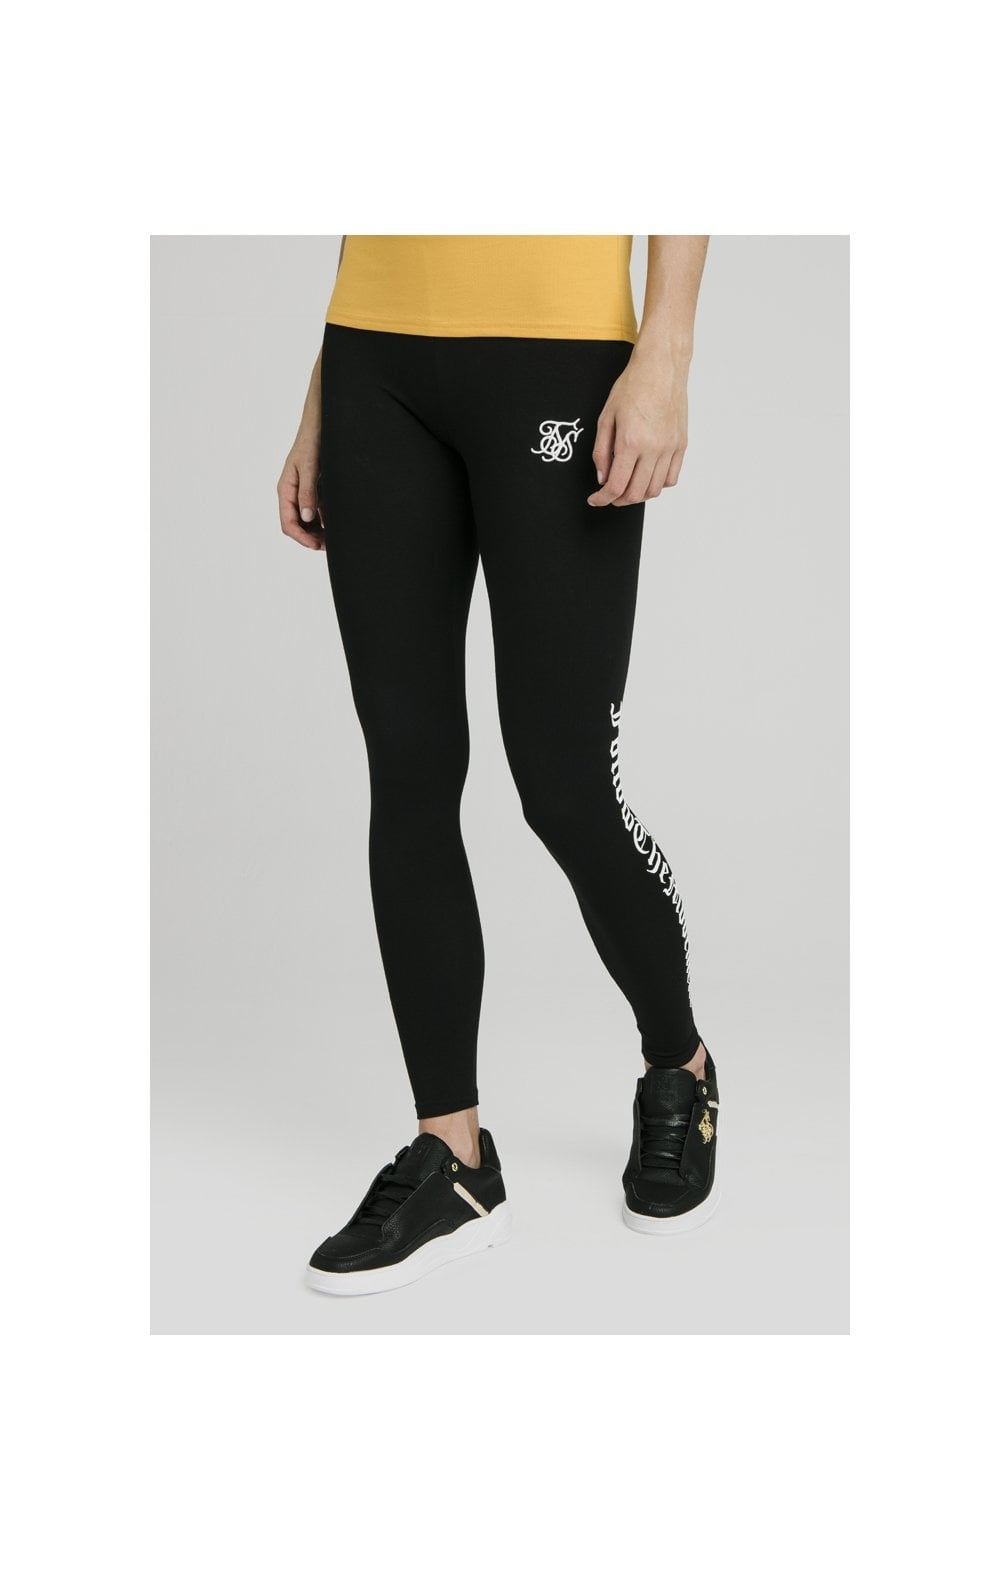 "SikSilk Legging avec Texte ""Follow the Movement"" - Noir (1)"